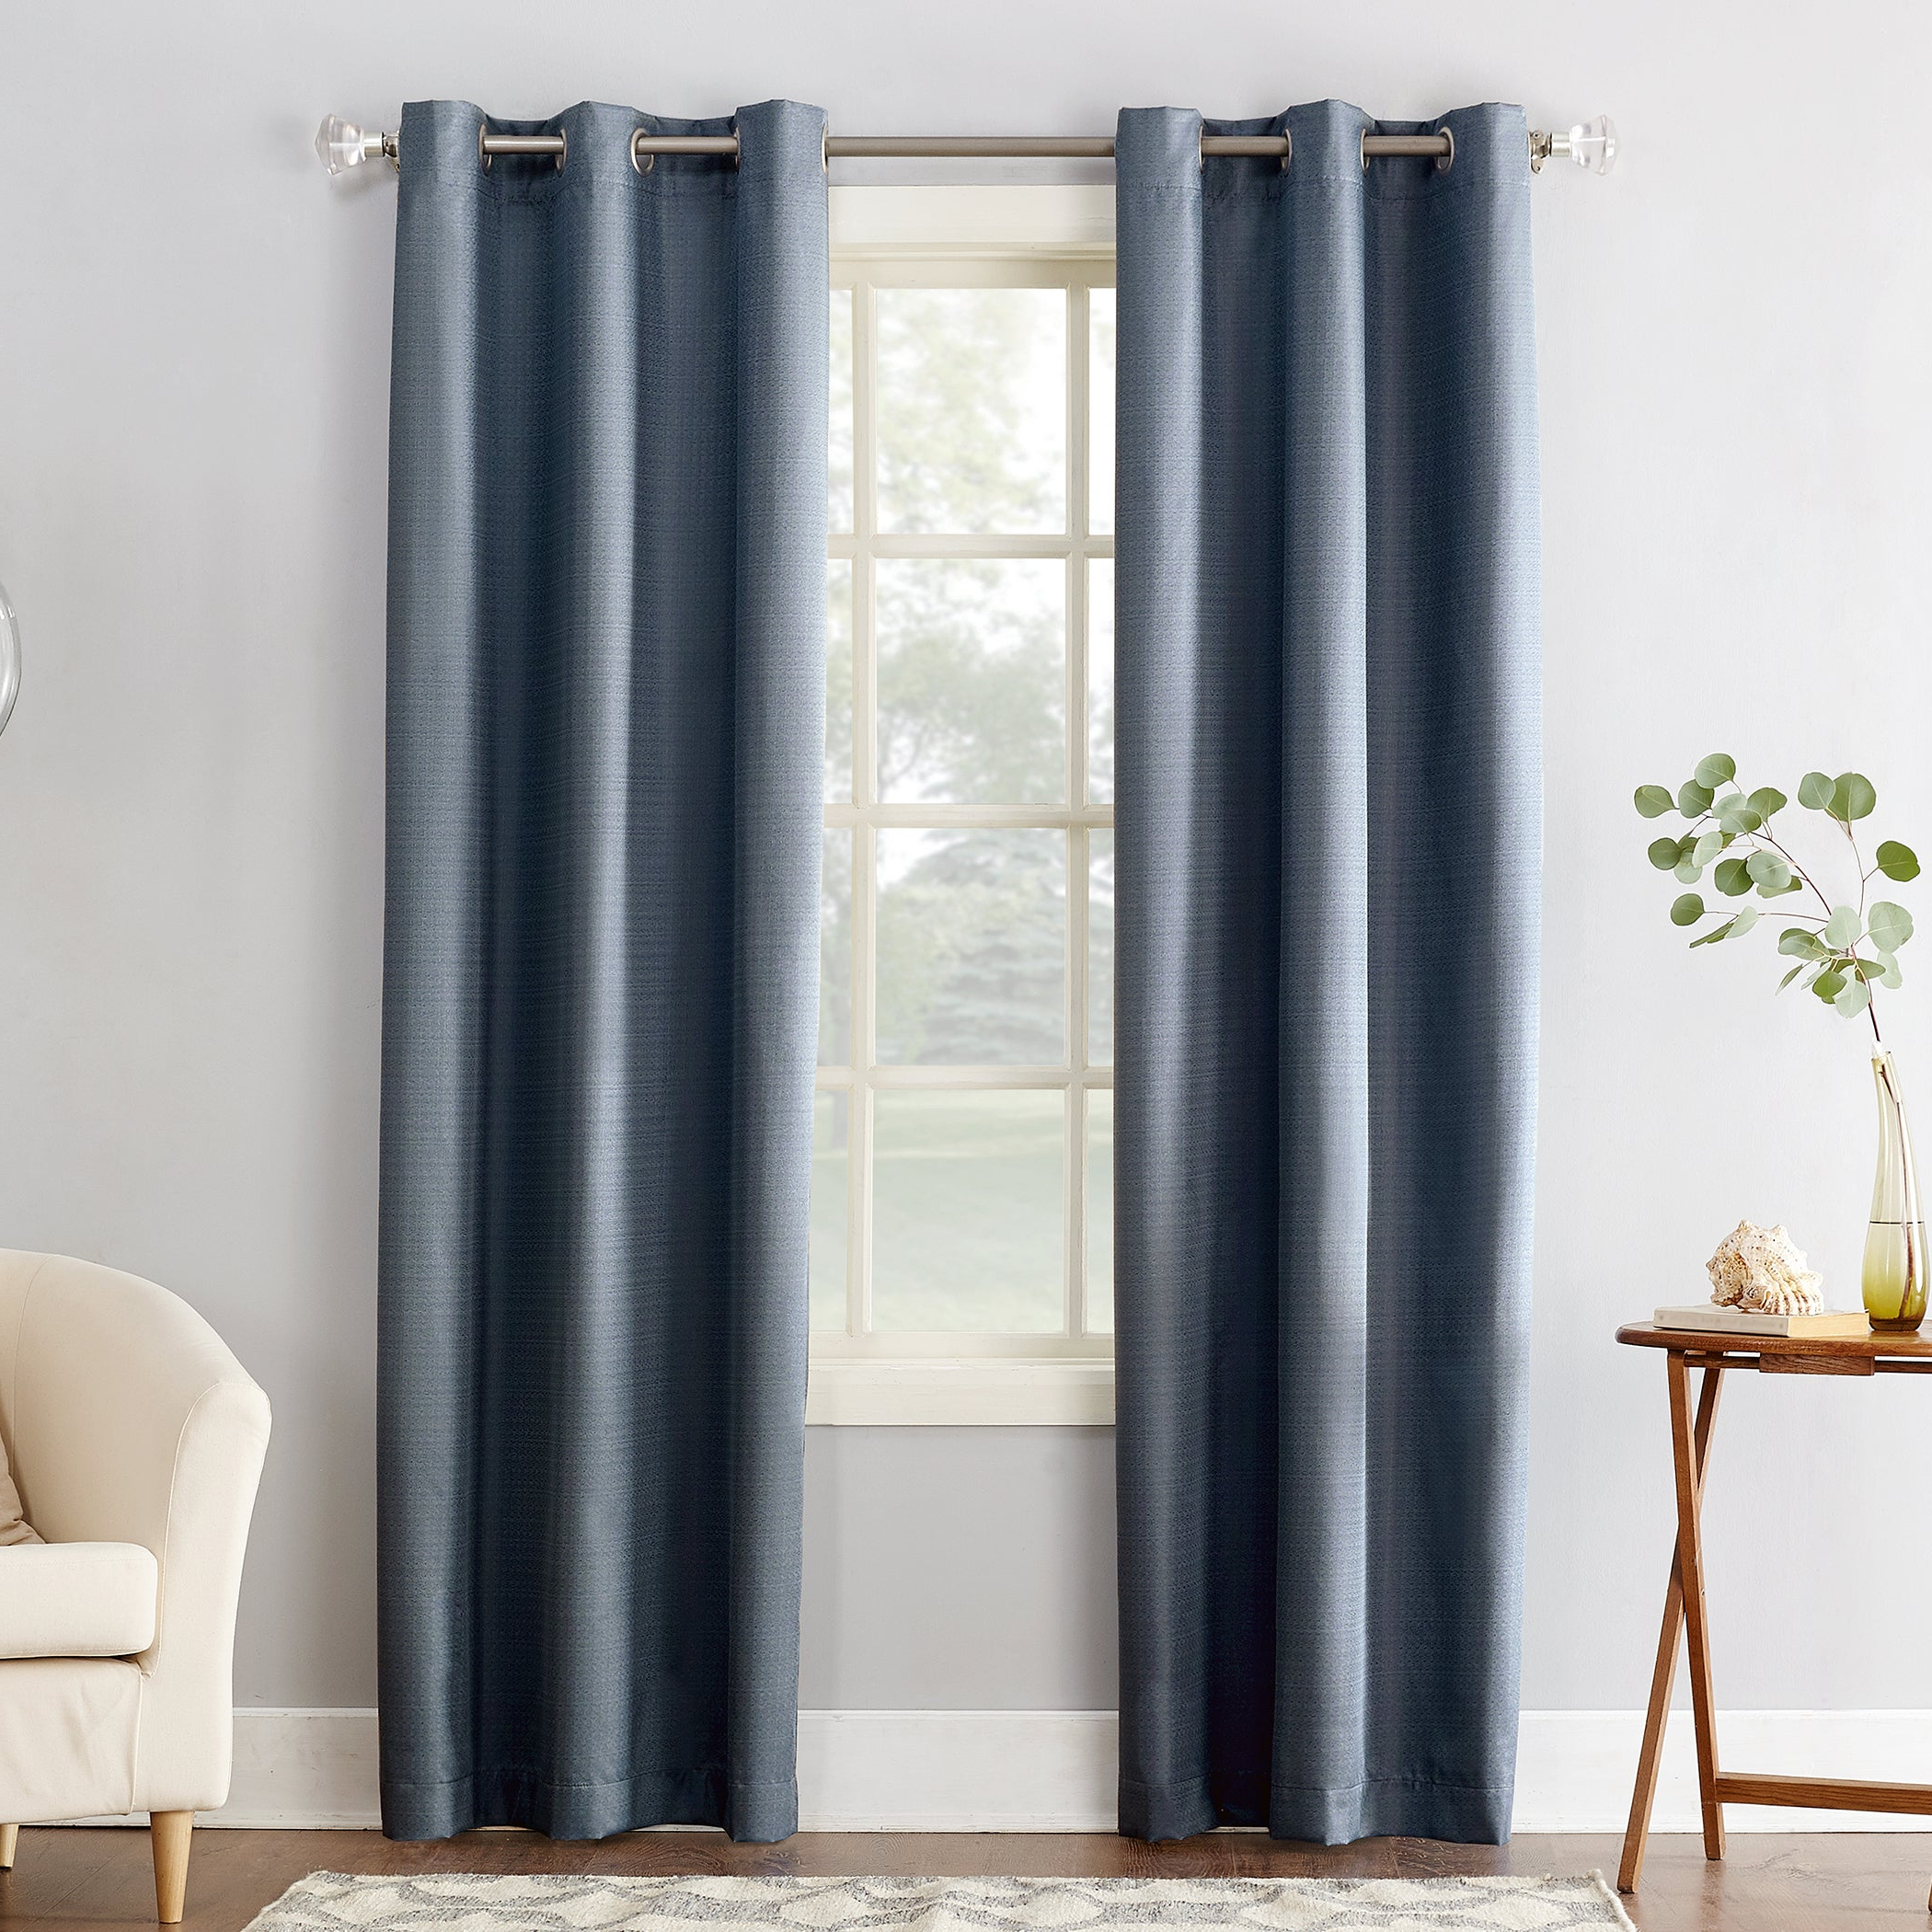 Sun Zero Cooper Textured Thermal Insulated Grommet Curtain Panel For Favorite Geometric Print Textured Thermal Insulated Grommet Curtain Panels (View 3 of 20)